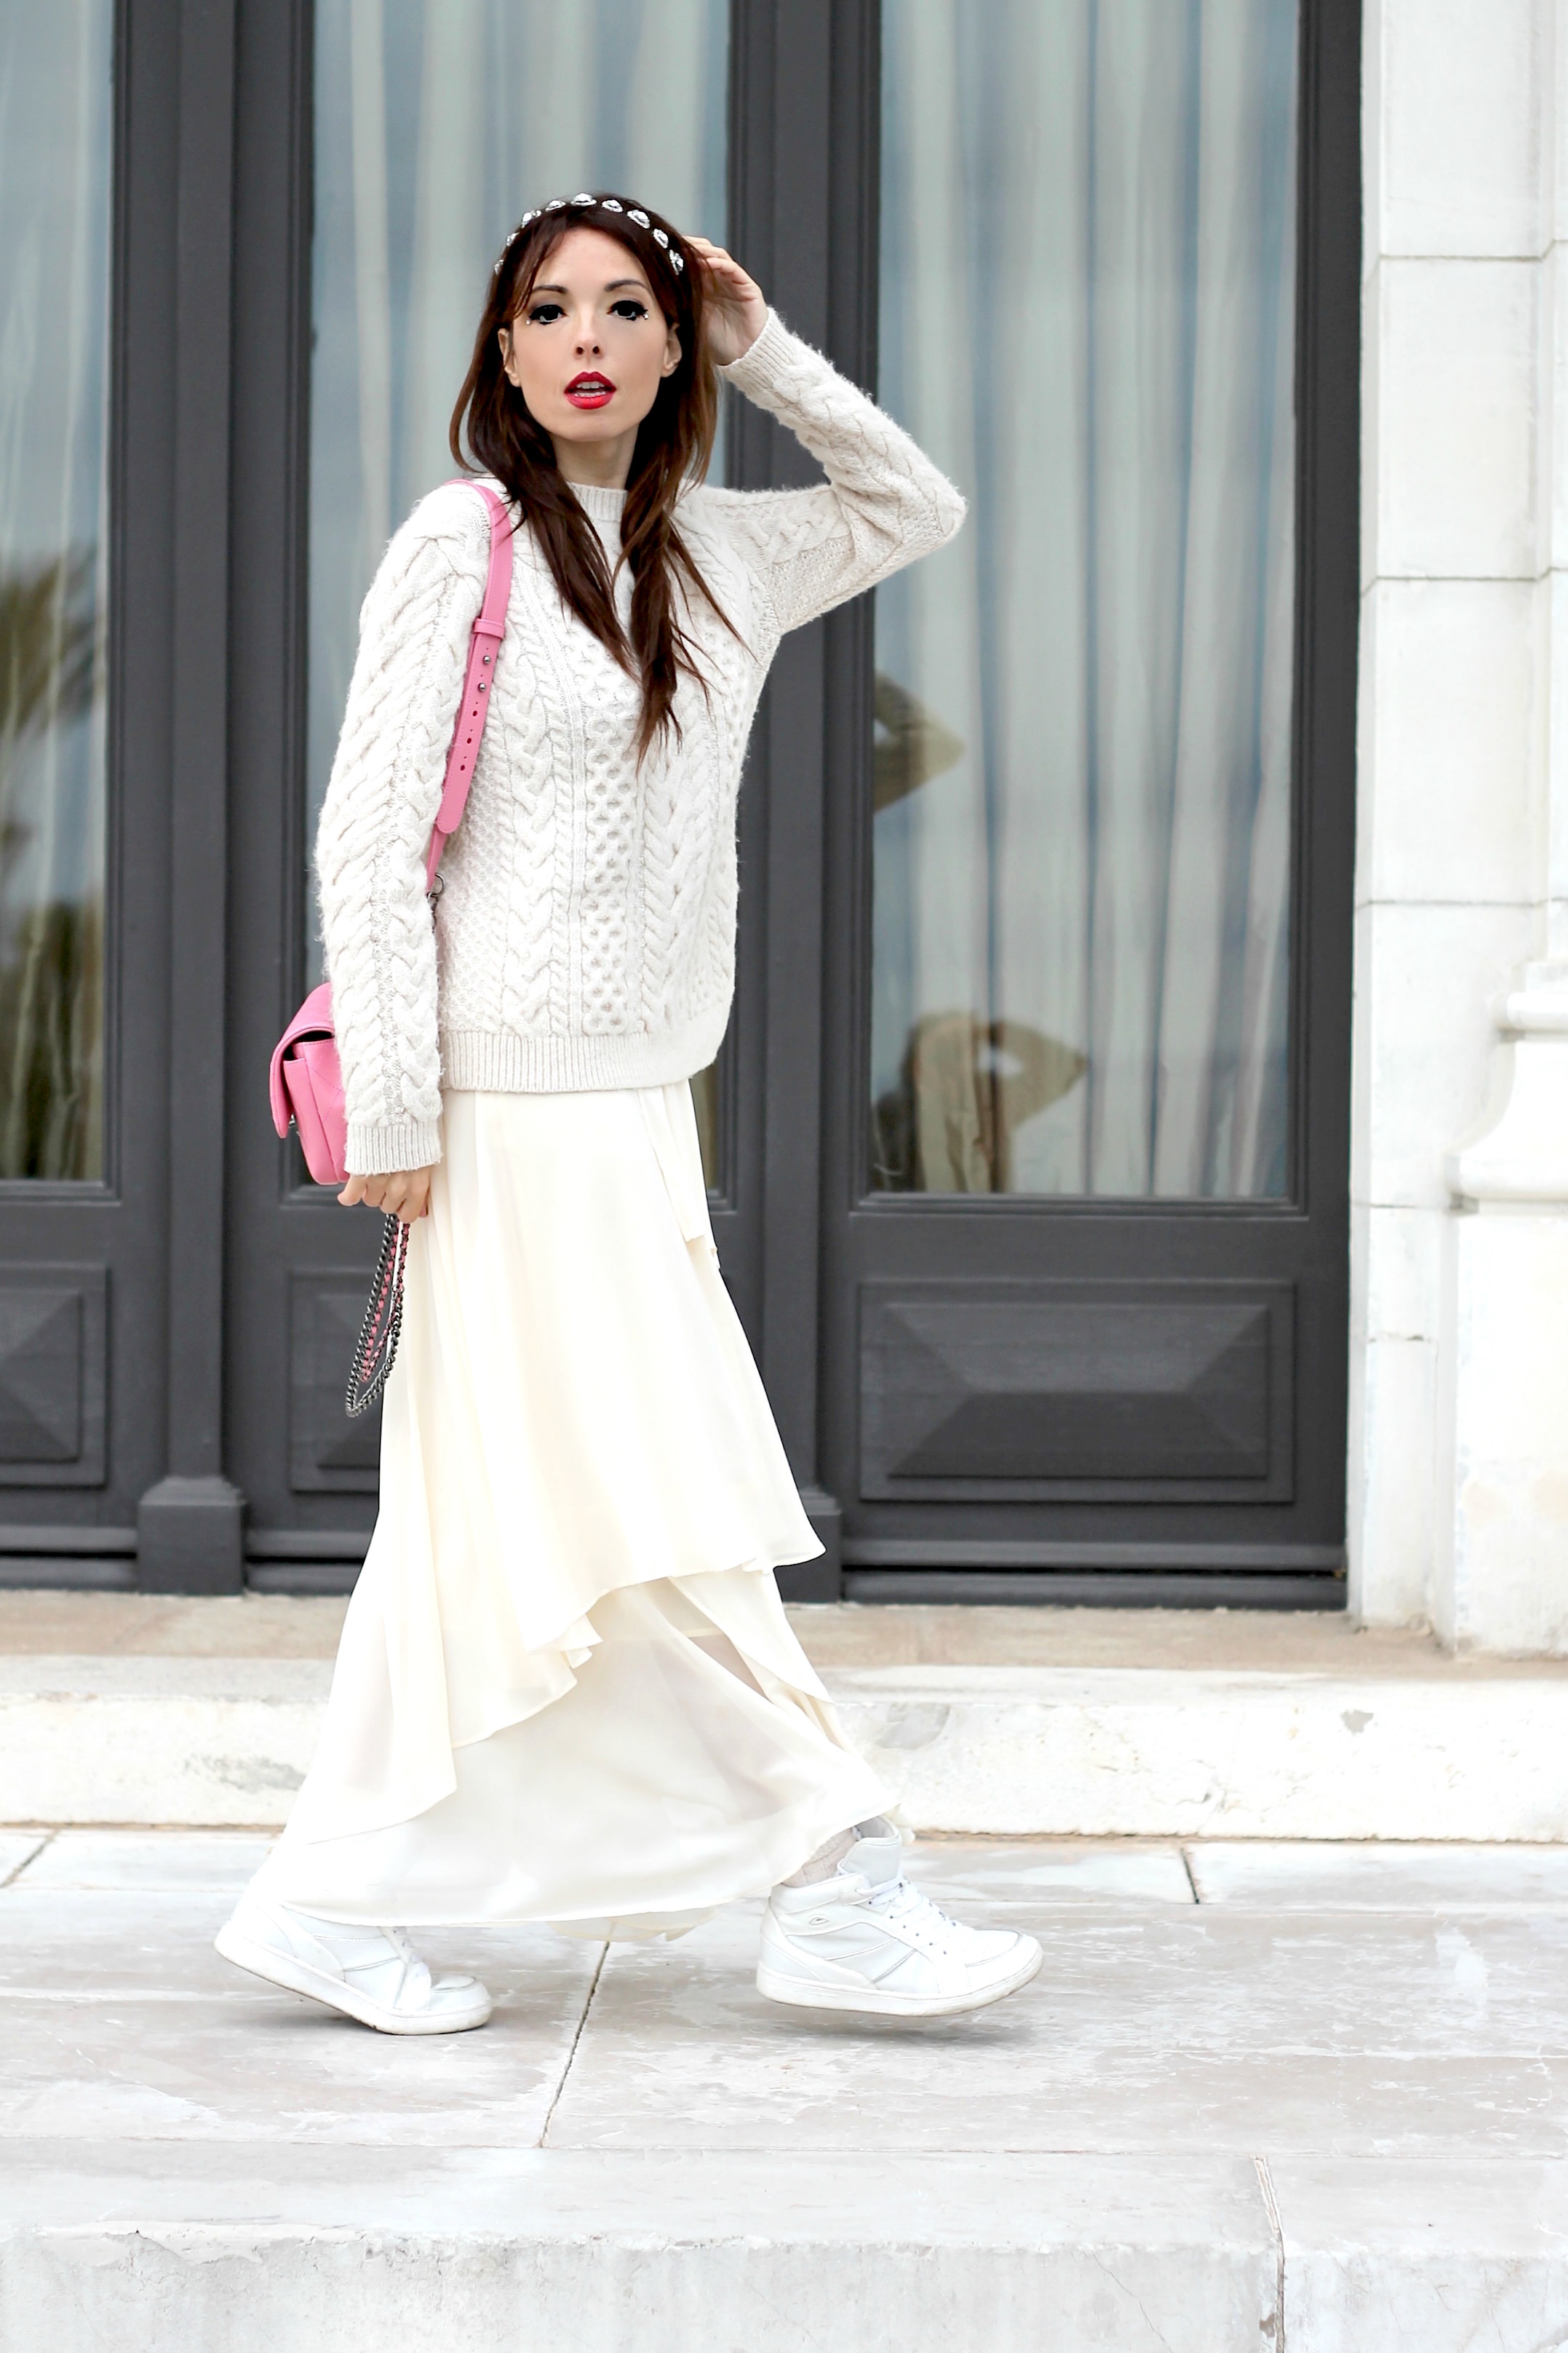 elisa bellino, chanel bag pink, theladycracy.it, fashion blogger italiane famose, fashion blog italia, chanel bag, prospettive lavorative futuro, total white look, zarina outfit, chanel pink bag